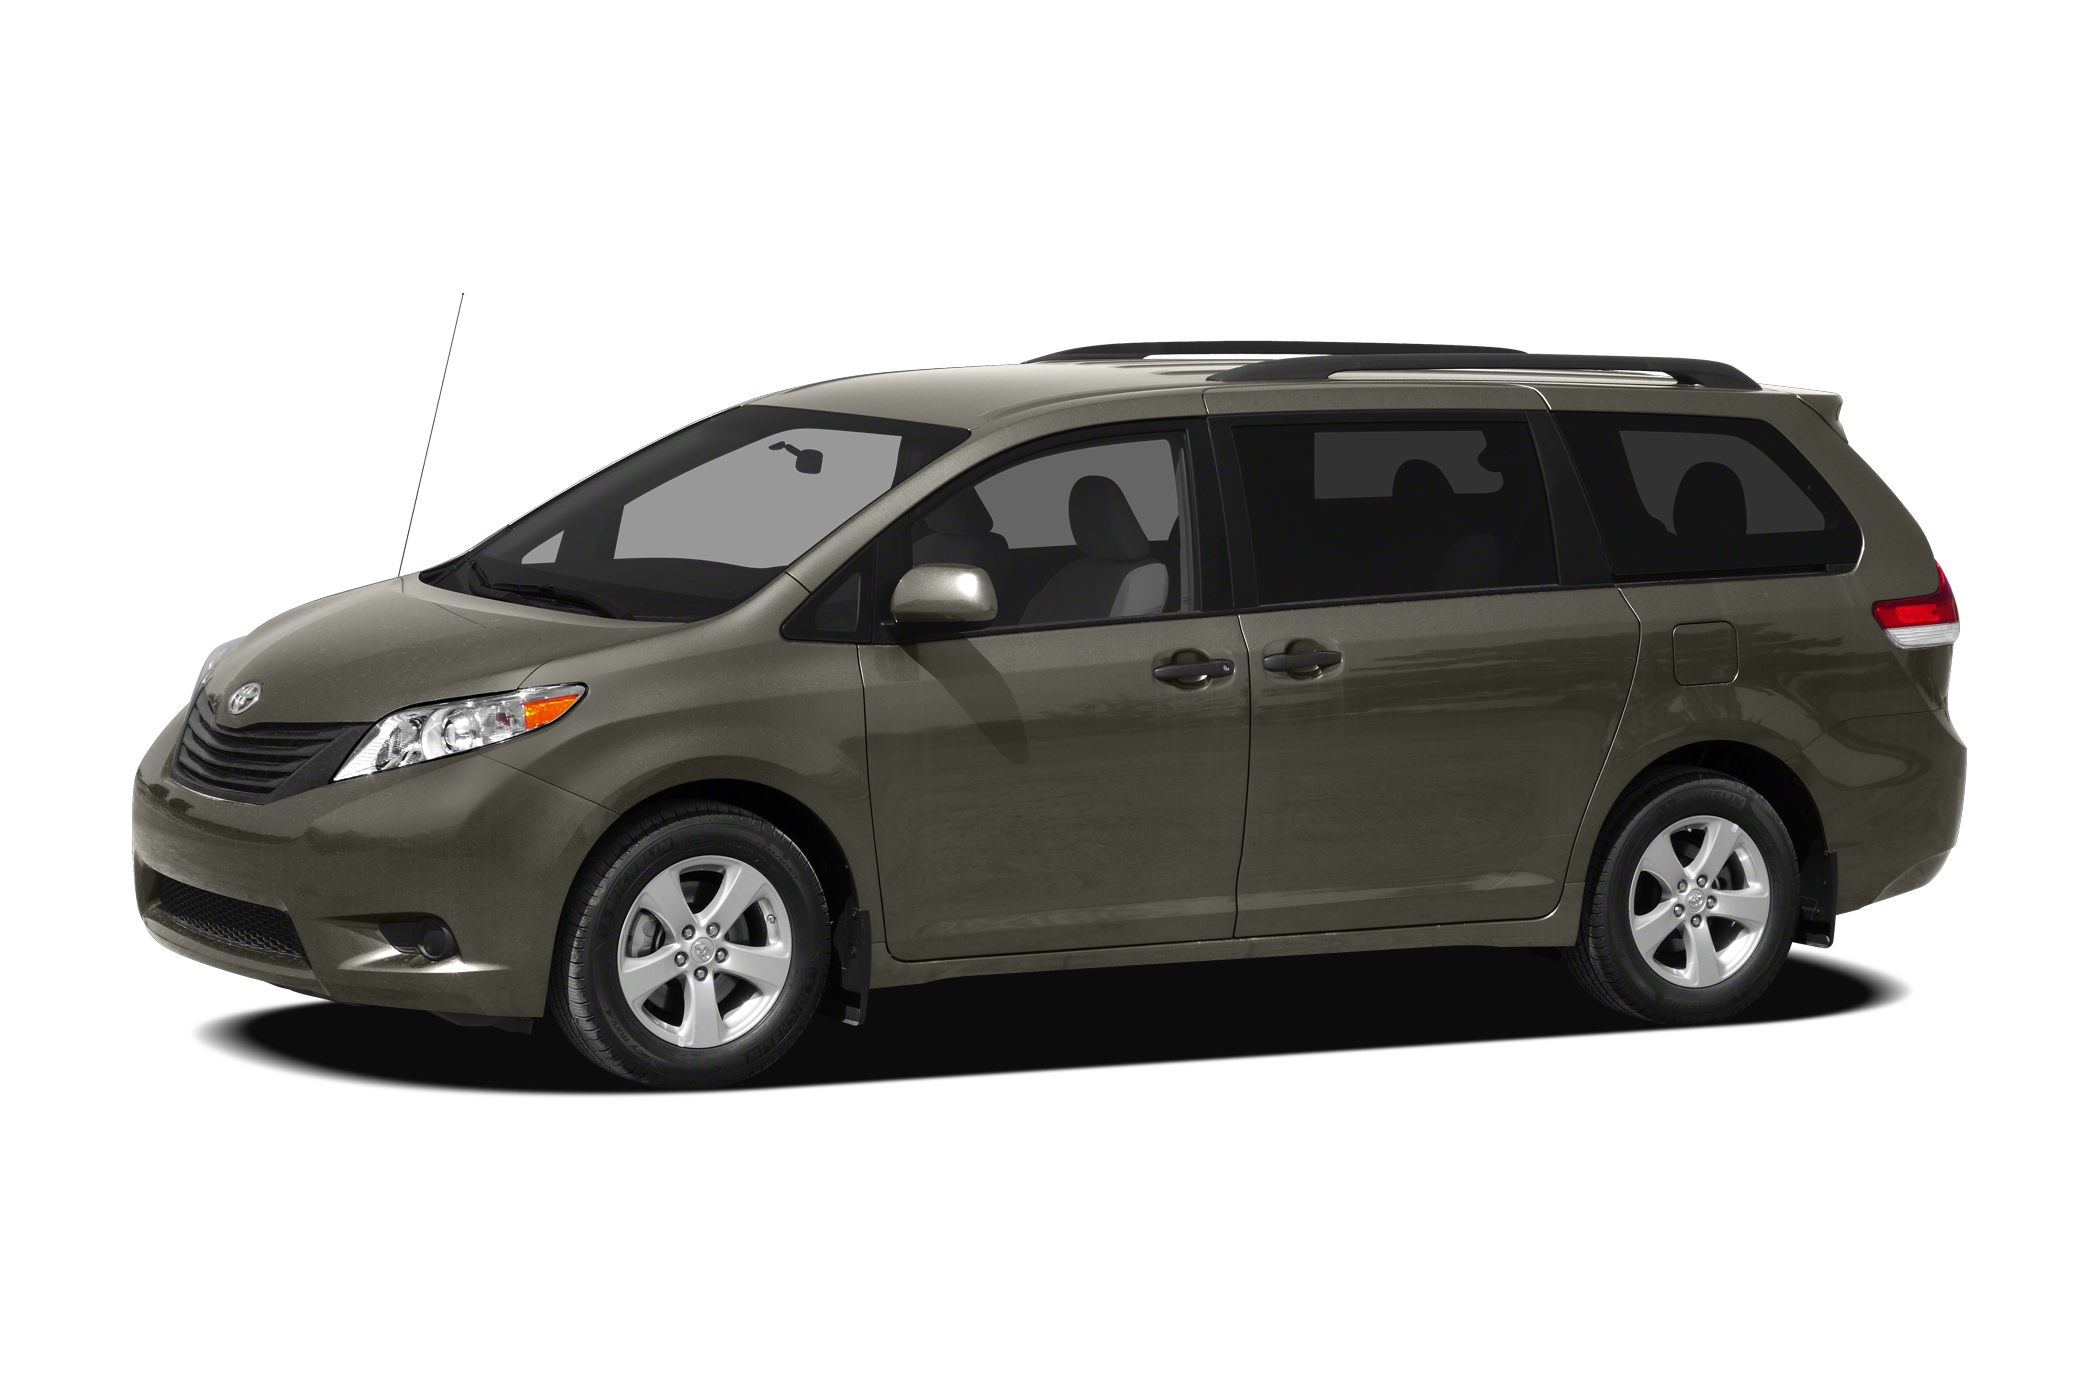 2012 Toyota Sienna Limited 7 Passenger 2500 below Kelley Blue Book Ltd trim Moonroof Nav Syst